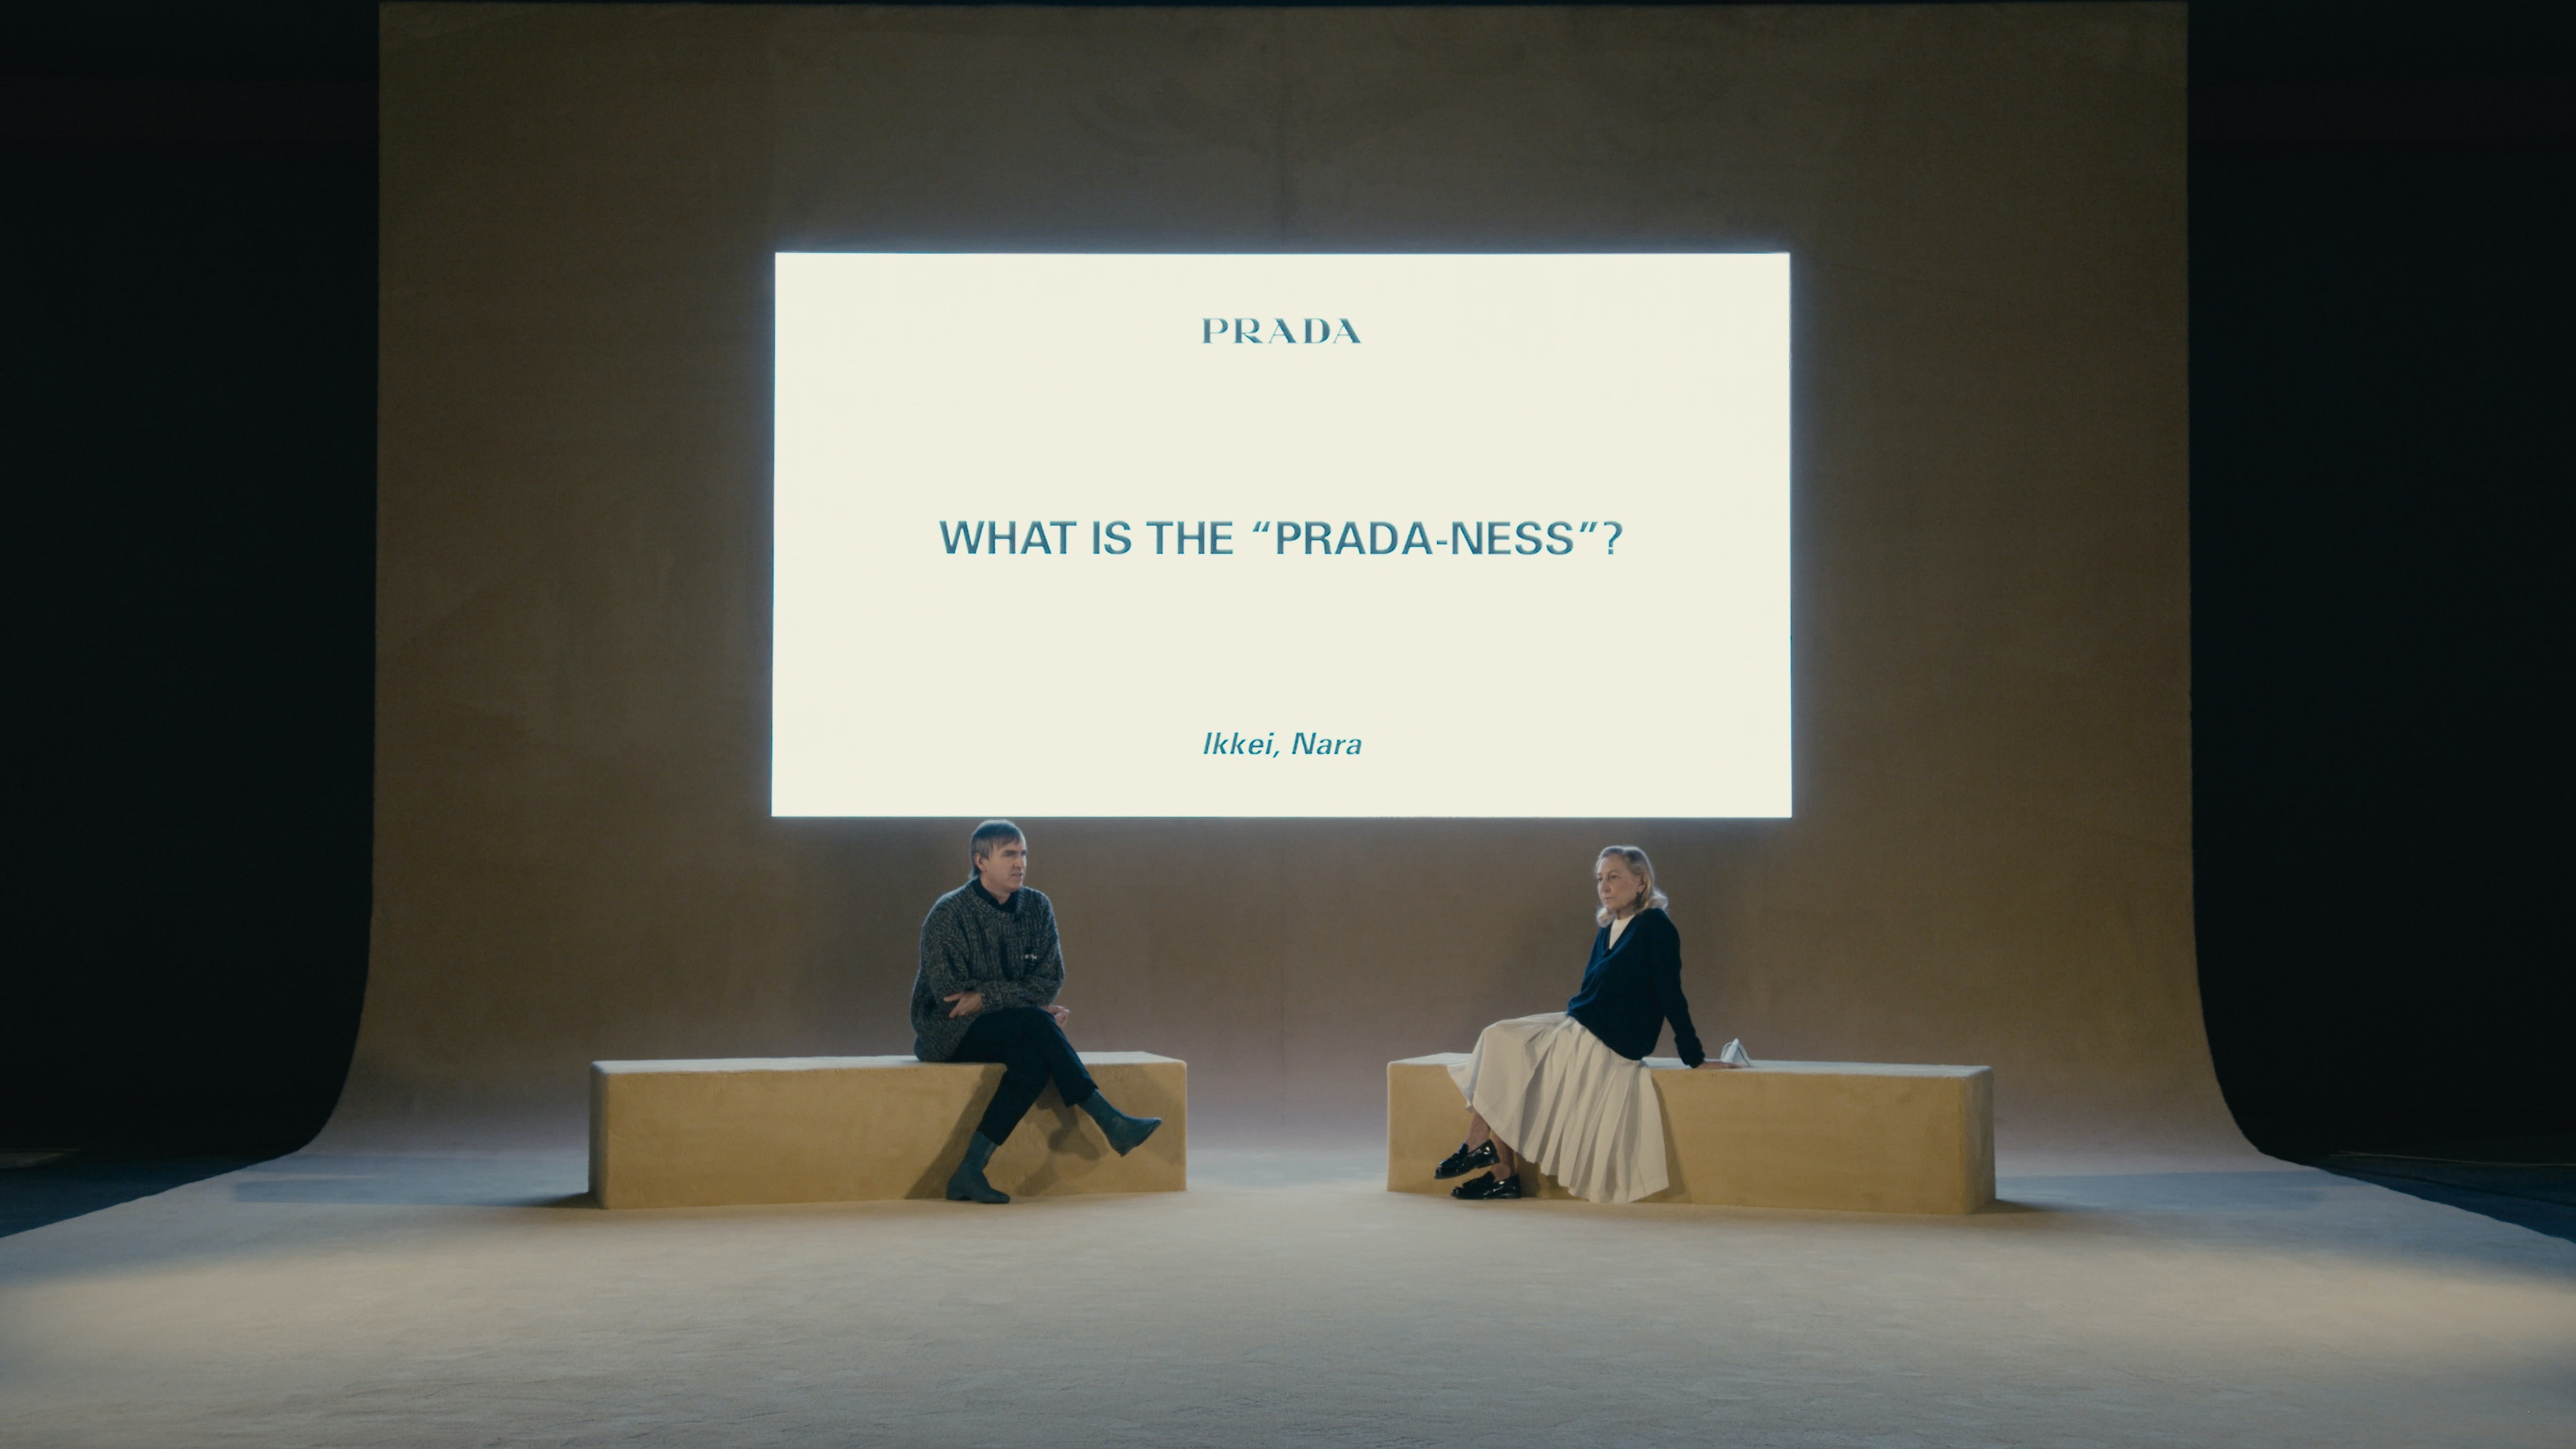 Raf Simons in conversation with Miuccia Prada after the Prada Spring/Summer 2021 show in Milan | Source: Courtesy